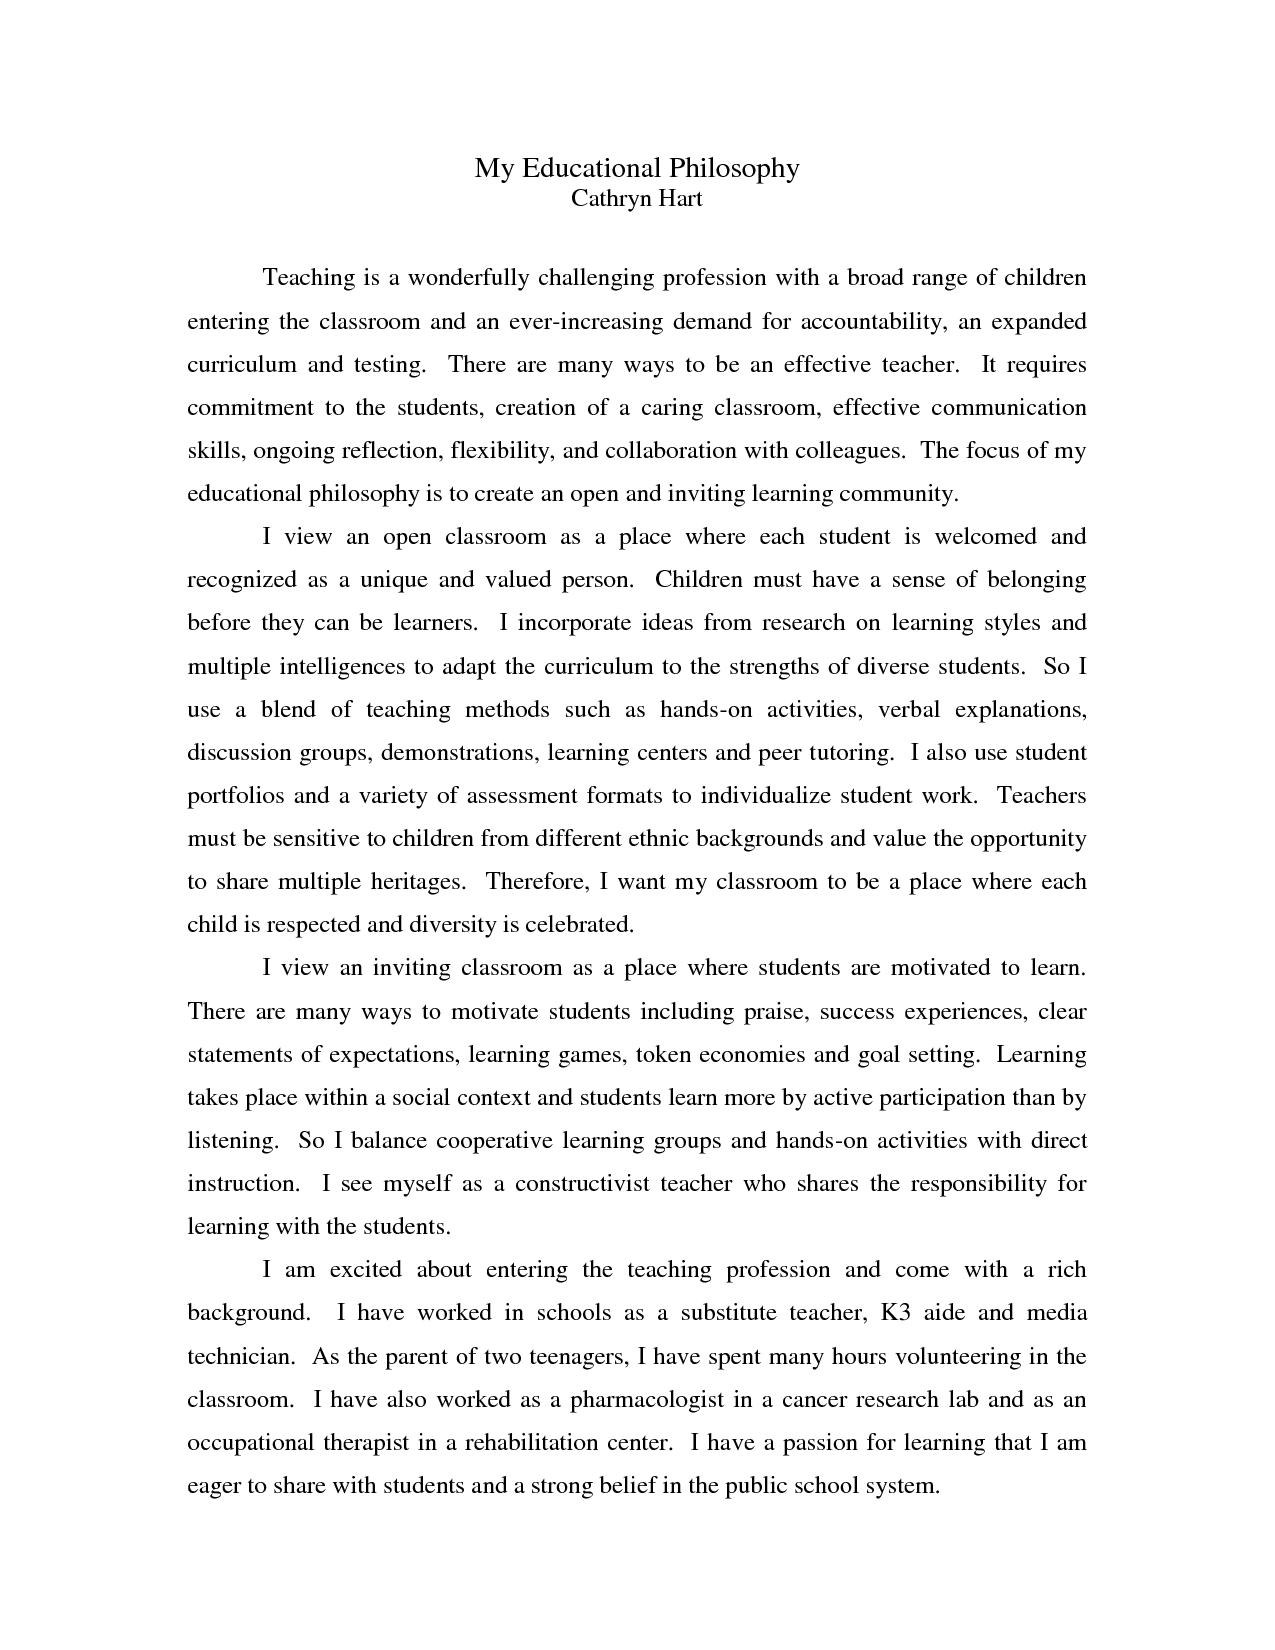 personal philosophy essay Published: mon, 5 dec 2016 teaching teaching is a delivery of knowledge and giving impact on the next generation in terms of teaching, i will discuss my roles as a teacher and a learner, narrate clearly about my teaching styles that i used to and will intend to apply.